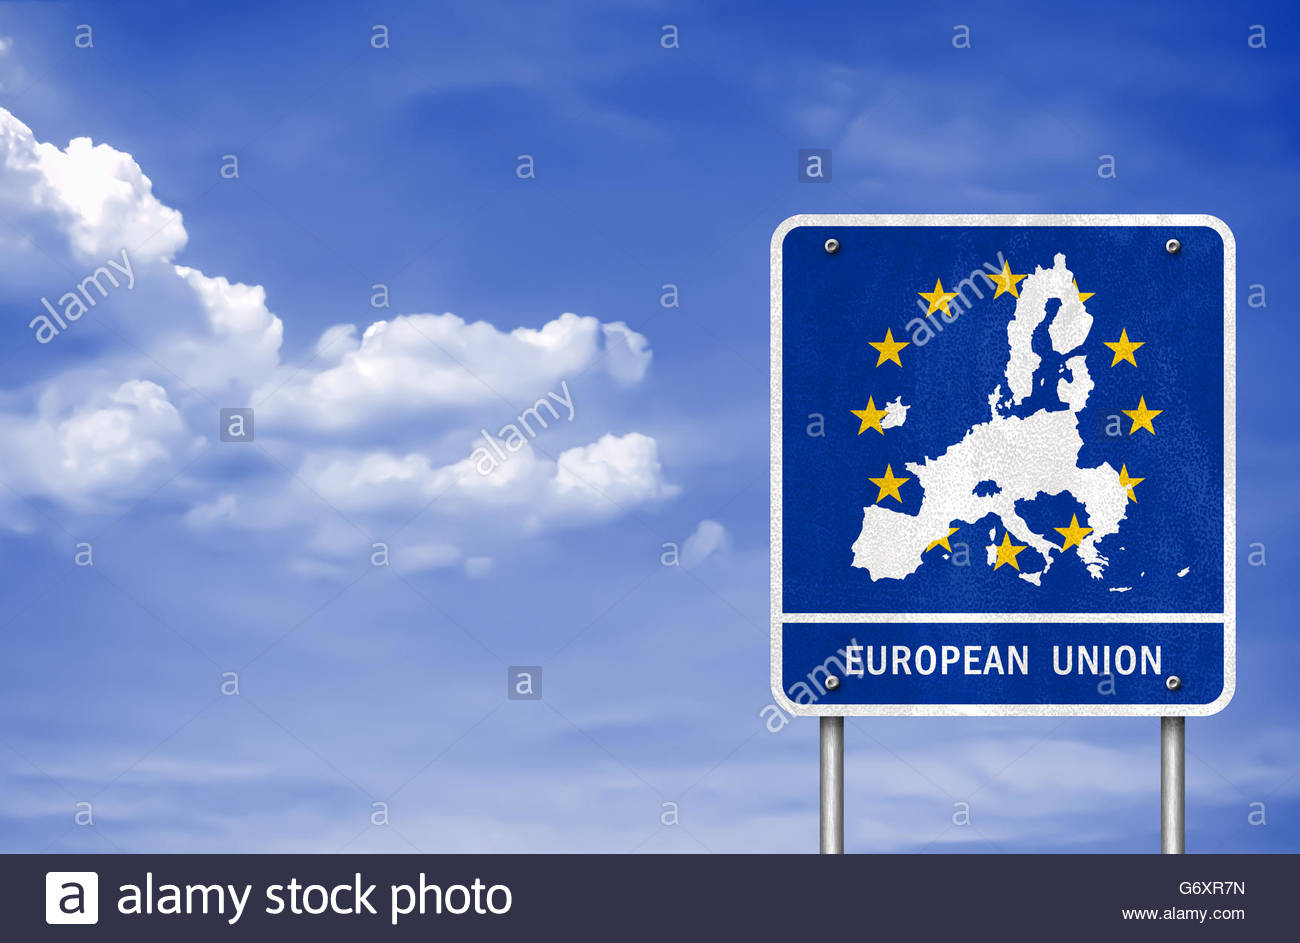 European Union road sign map without the UK - Stock Image